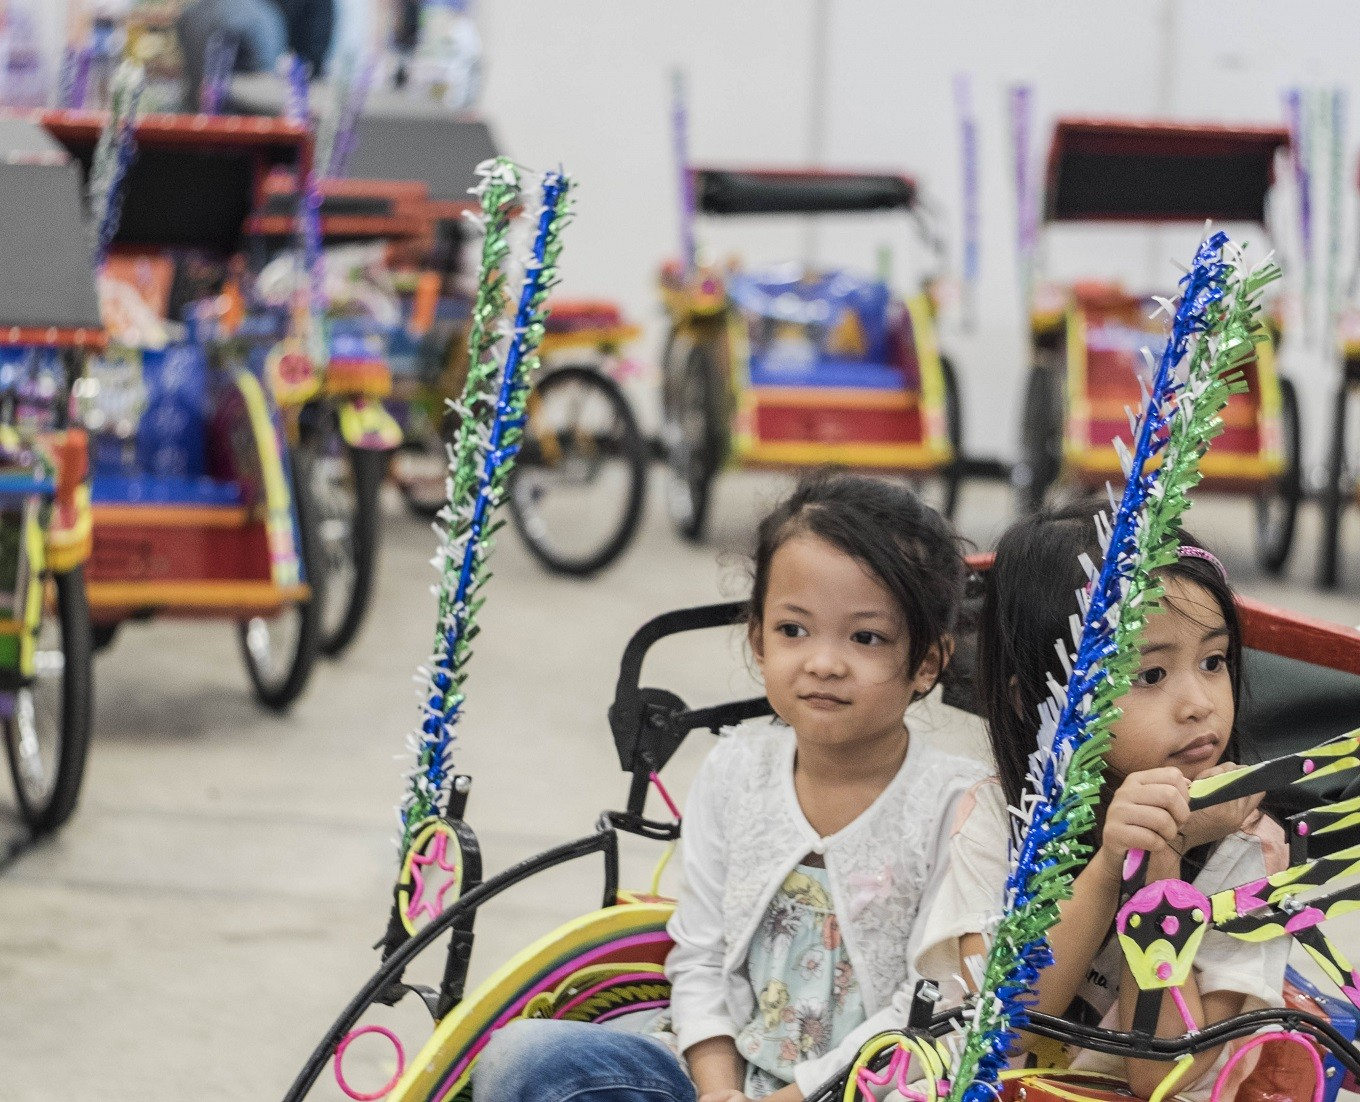 Anies plans to return 'becak' to Jakarta streets